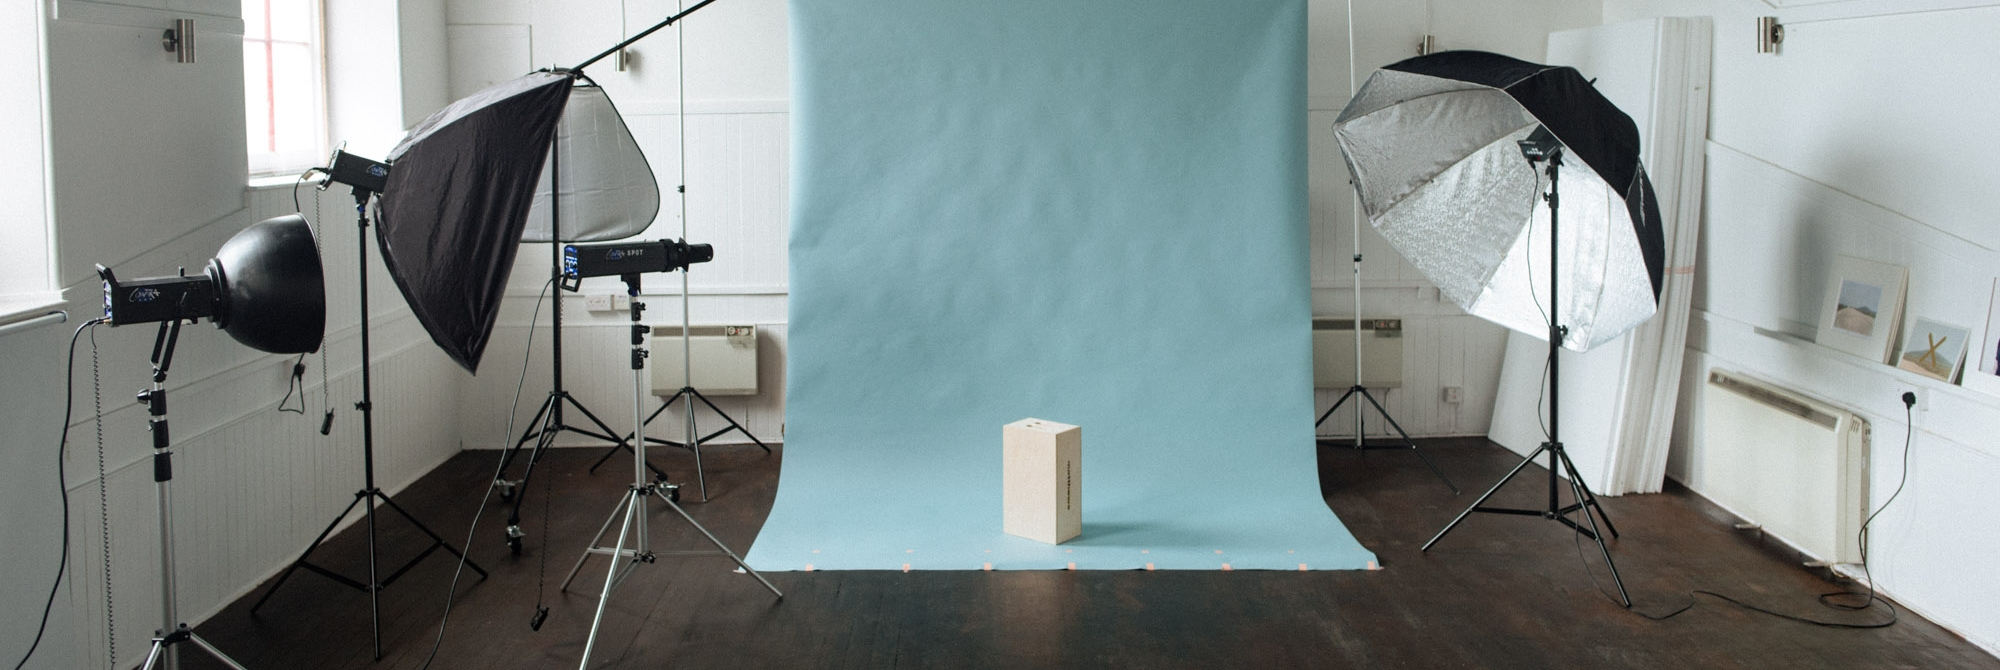 Courses are run based in our spacious fully equipped photography studio in central Edinburgh